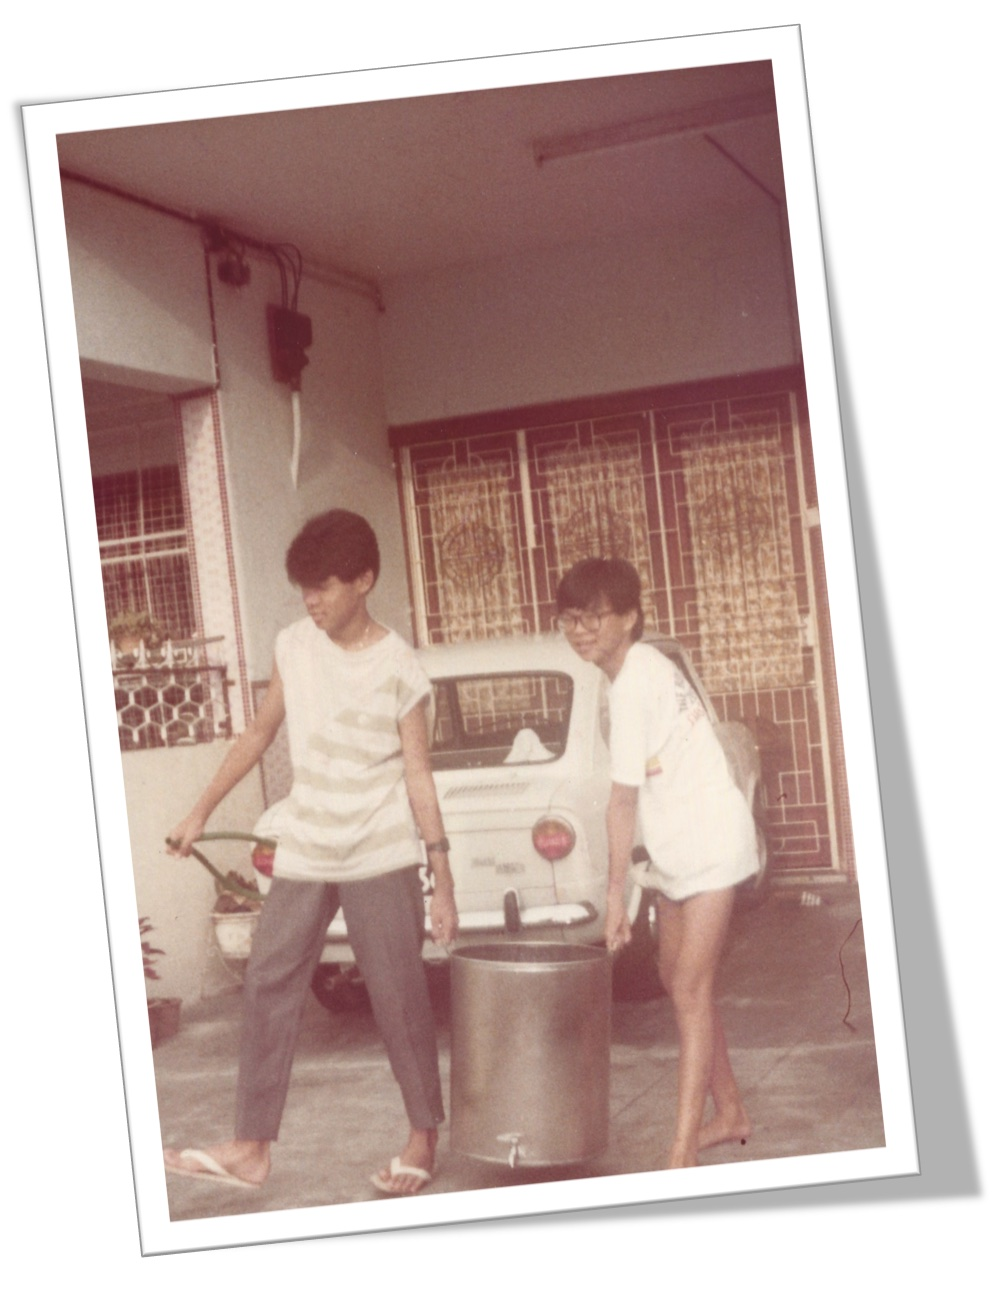 2 skinny guys preparing bandung drink using rose syrup, evaporated milk and ice